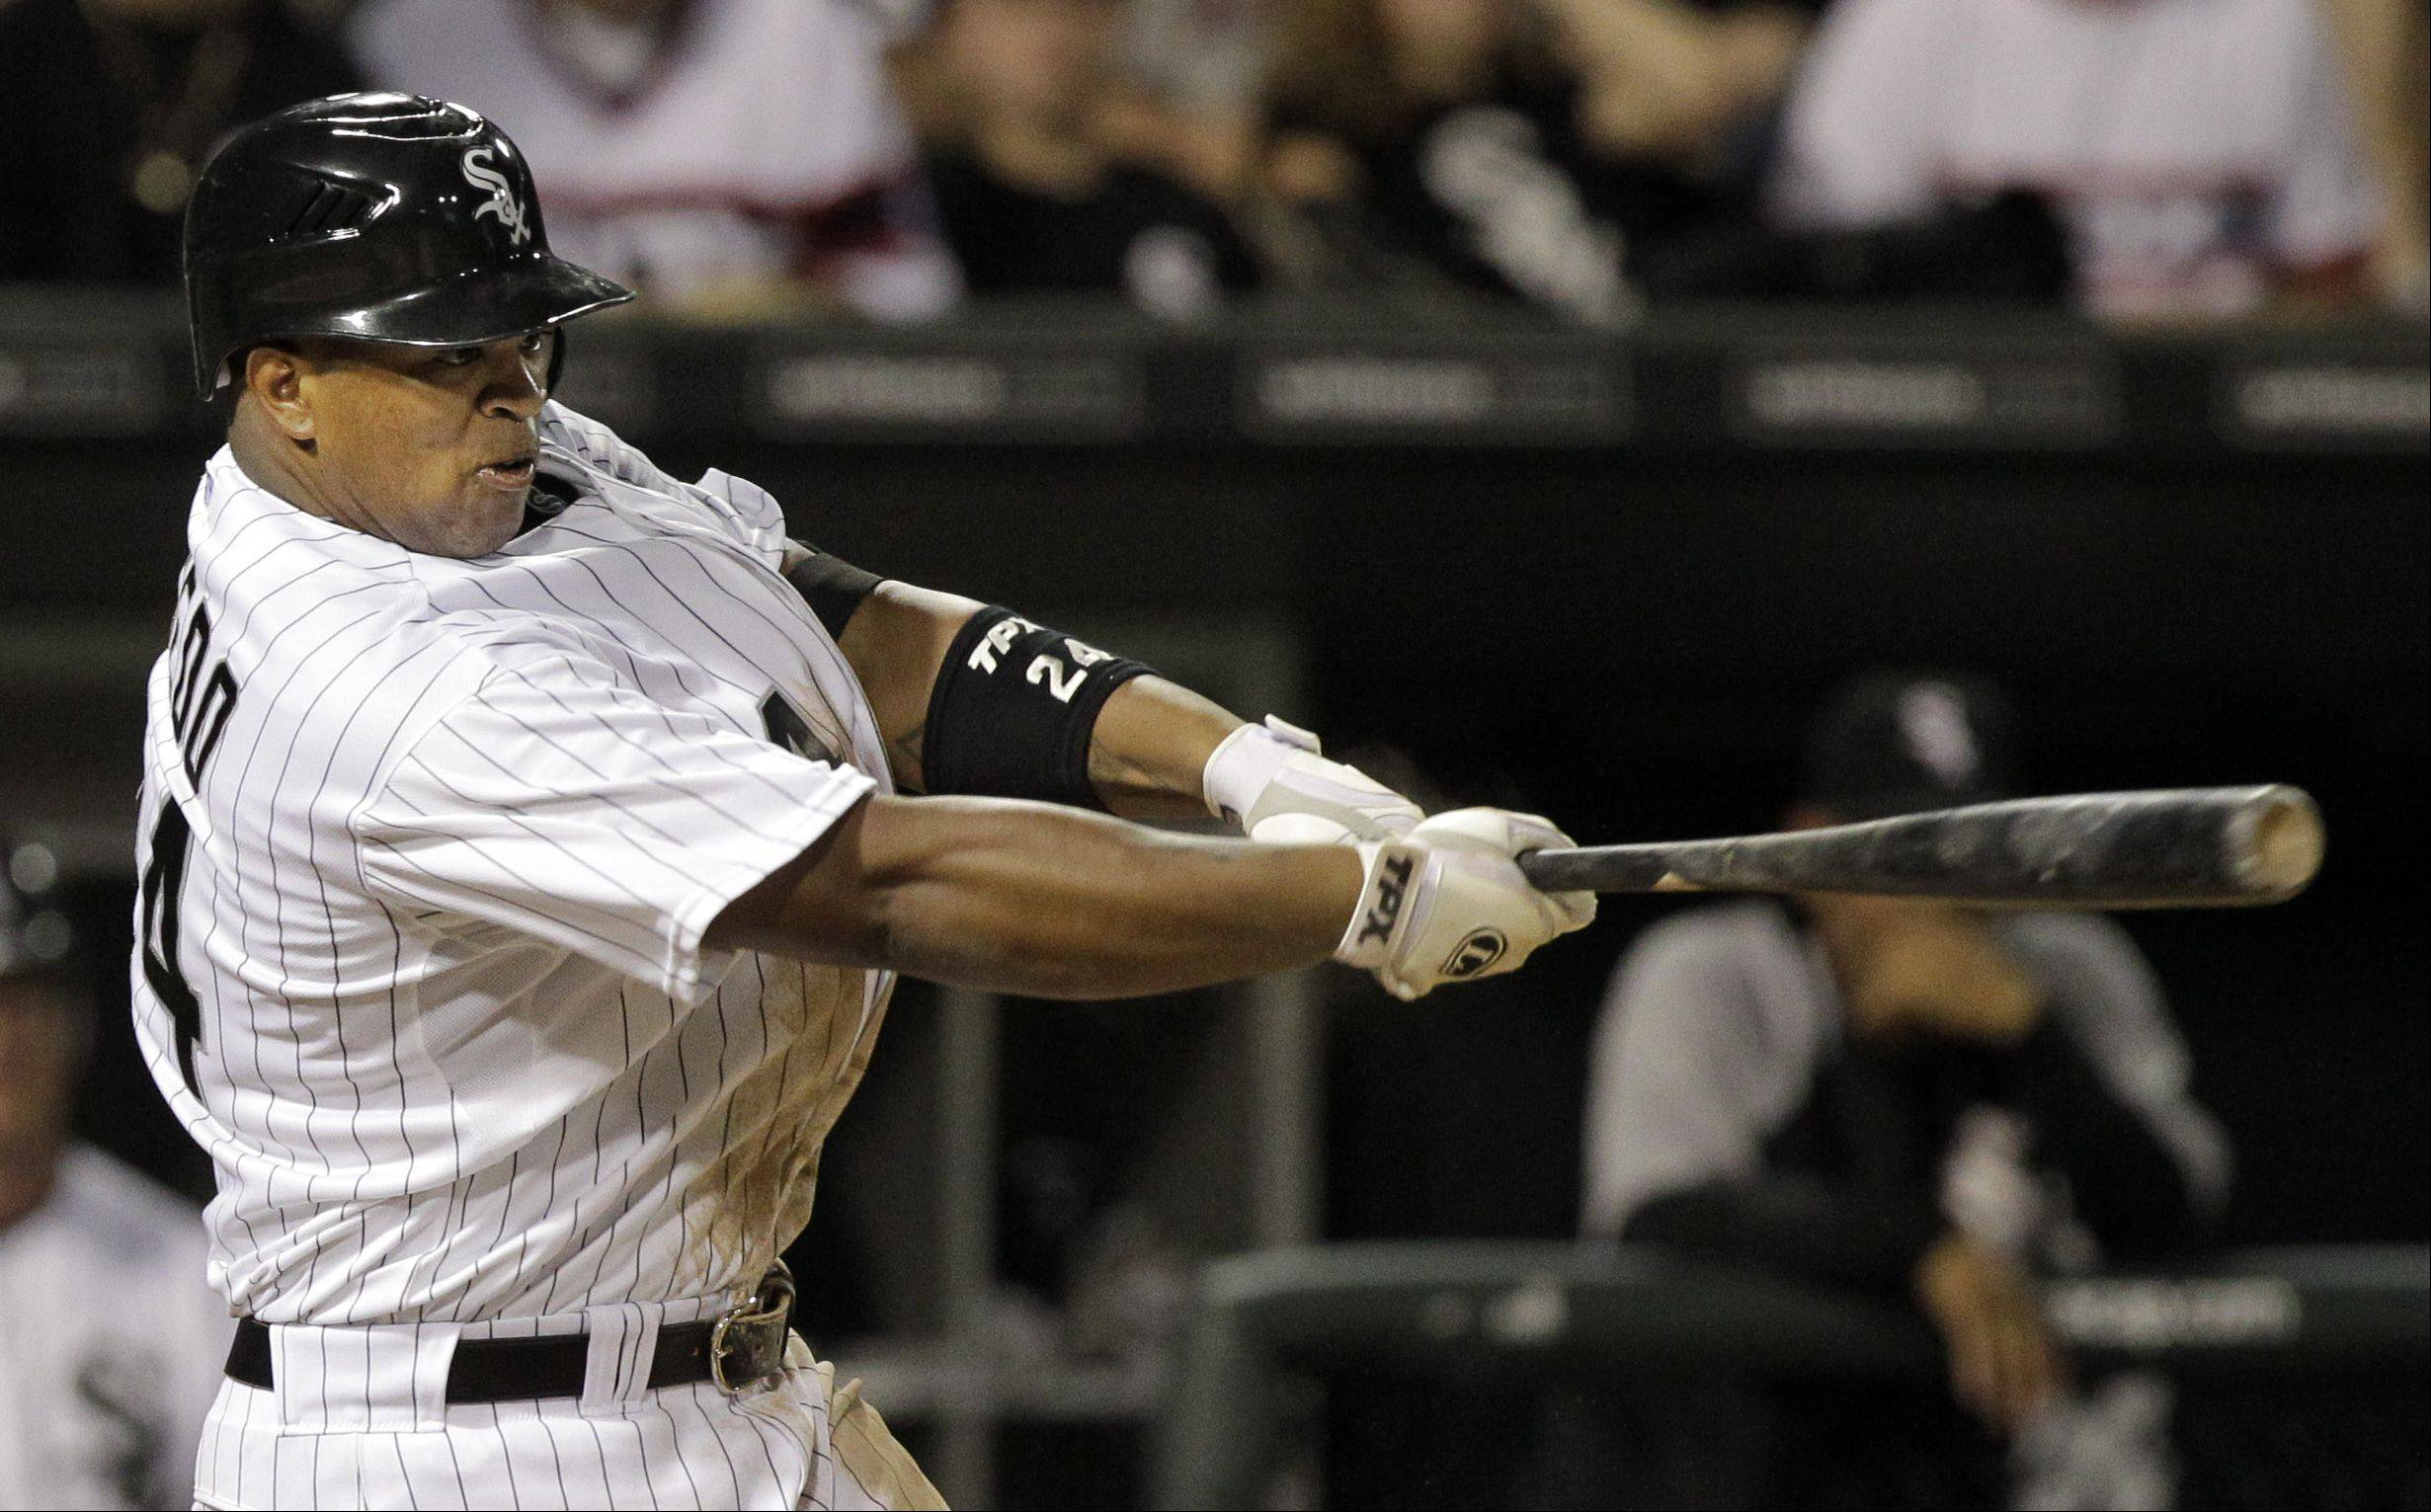 Hot-hitting Dayan Viciedo isn't the White Sox' only bright spot in the minor leagues, but the club is making a habit of trading potential for proven performers.